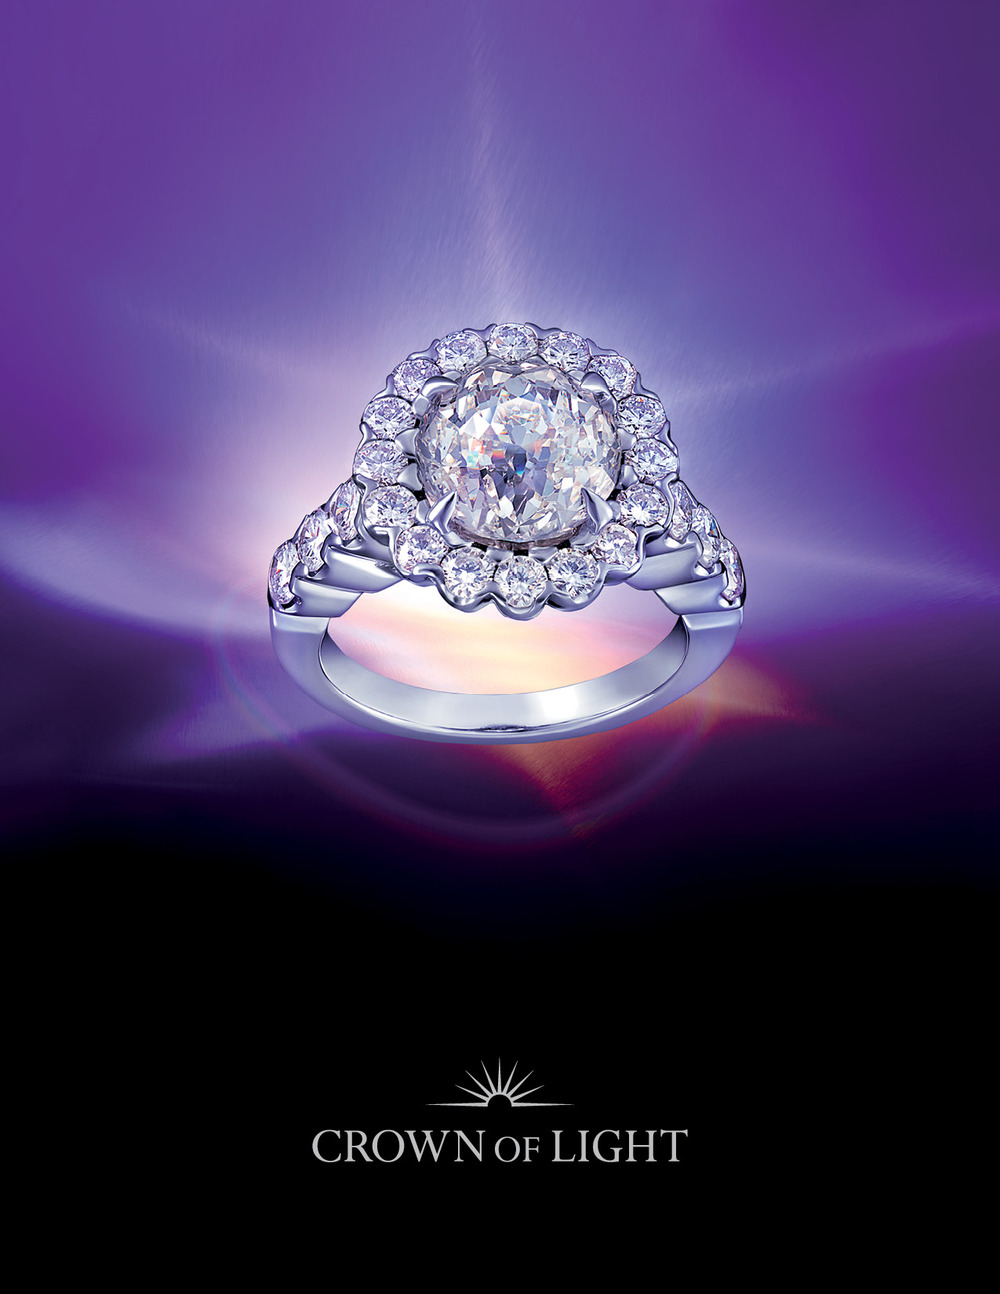 High Quality Luxury Fine Jewelry Brand Crown Of Light Logo Design, Packaging Design, And  Print Collateral Photo Gallery